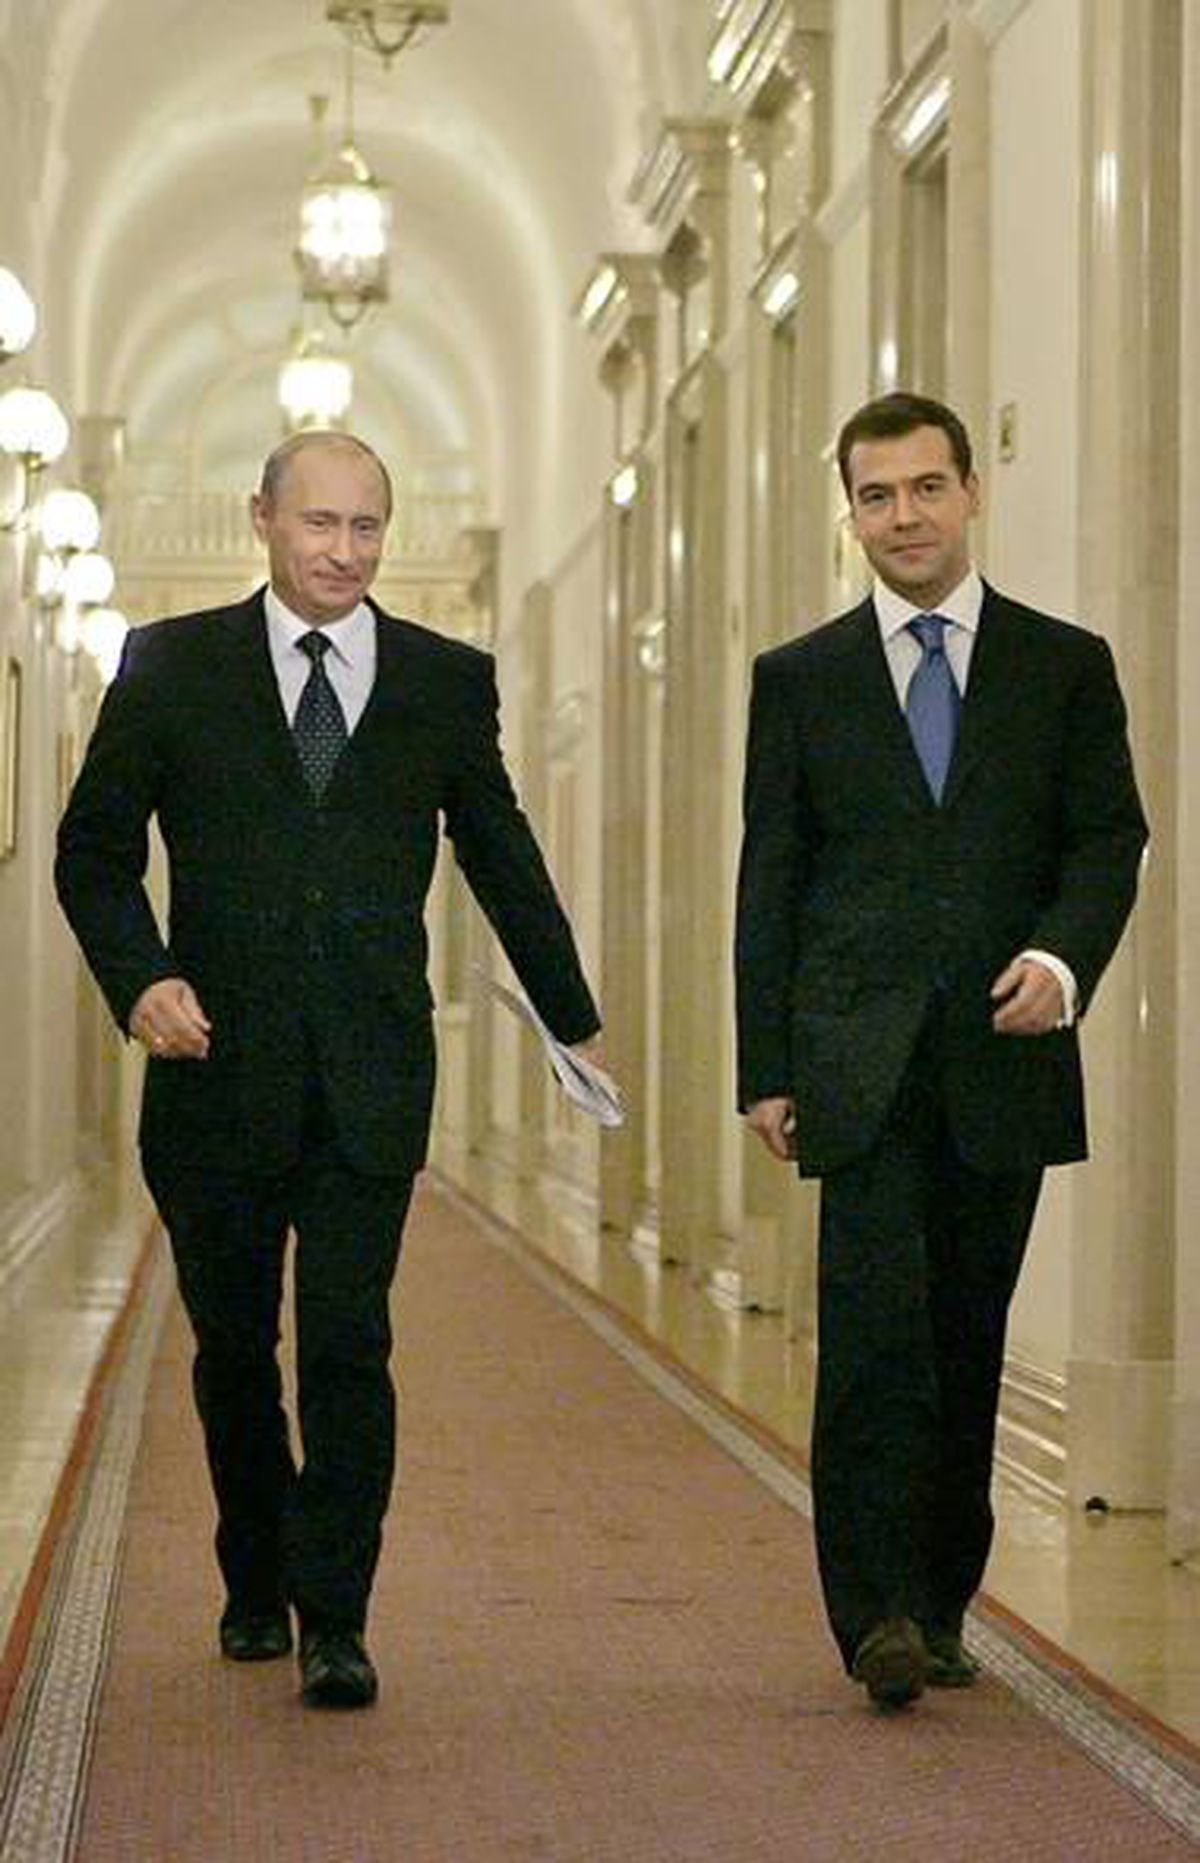 """RUSSIA: Russian Prime Minister Vladimir Putin is an """"alpha-dog"""" ruler of a deeply corrupt state dominated by its security forces, U.S. diplomatic documents said. By contrast, President Dmitry Medvedev """"plays Robin to Putin's Batman."""""""